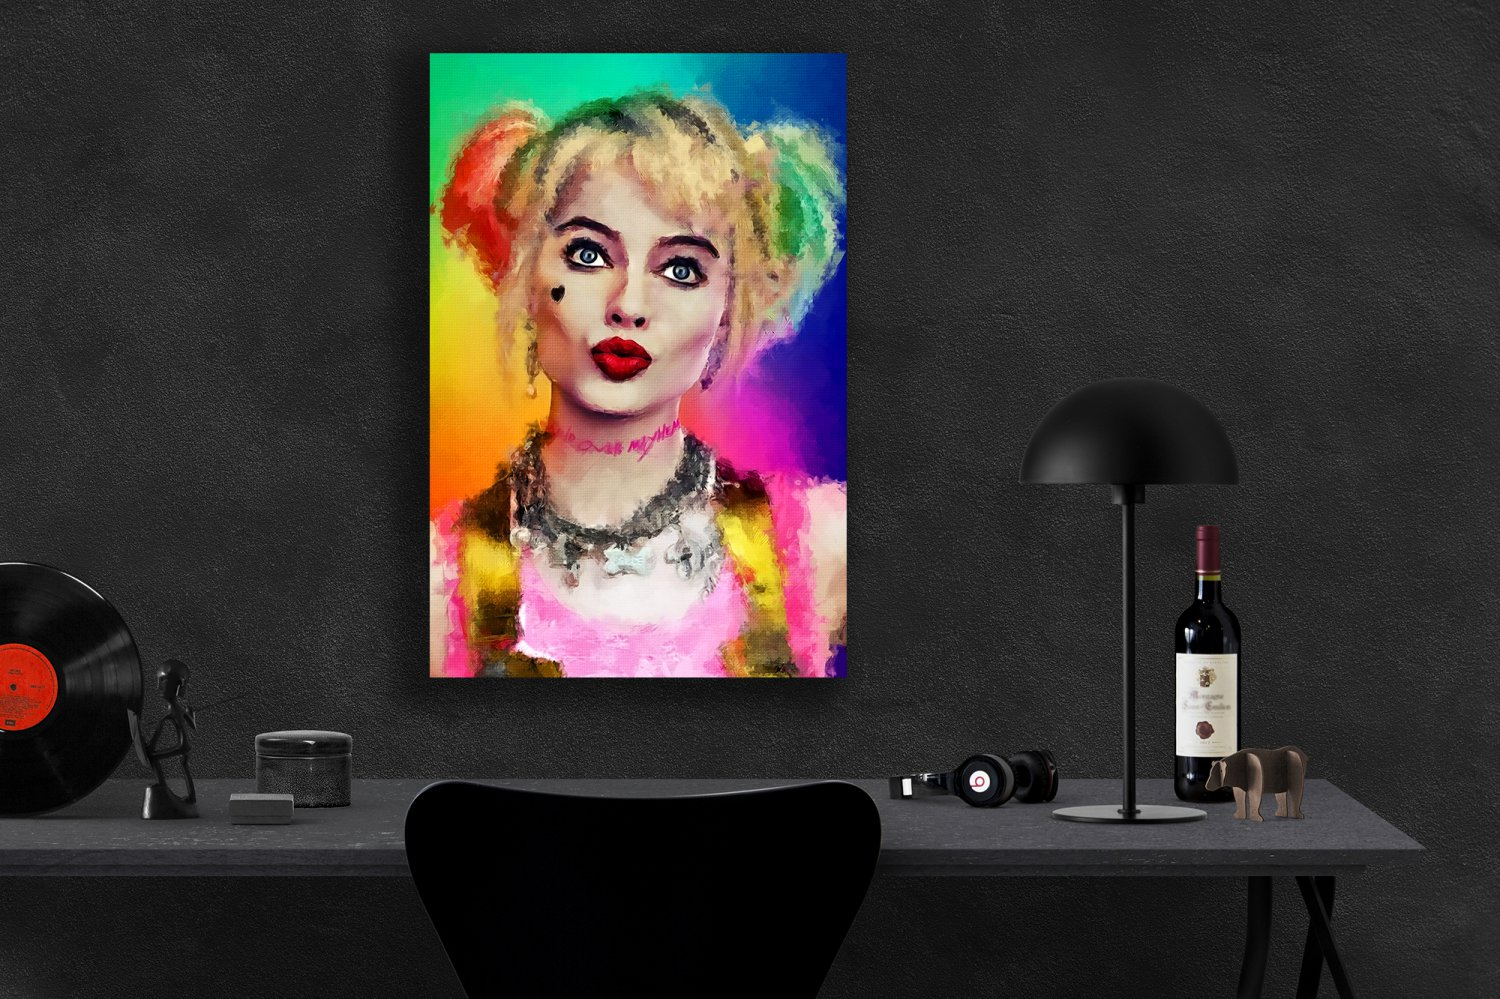 Birds of Prey, Harley Quinn, Margot Robbie  13x19 inches Canvas Print